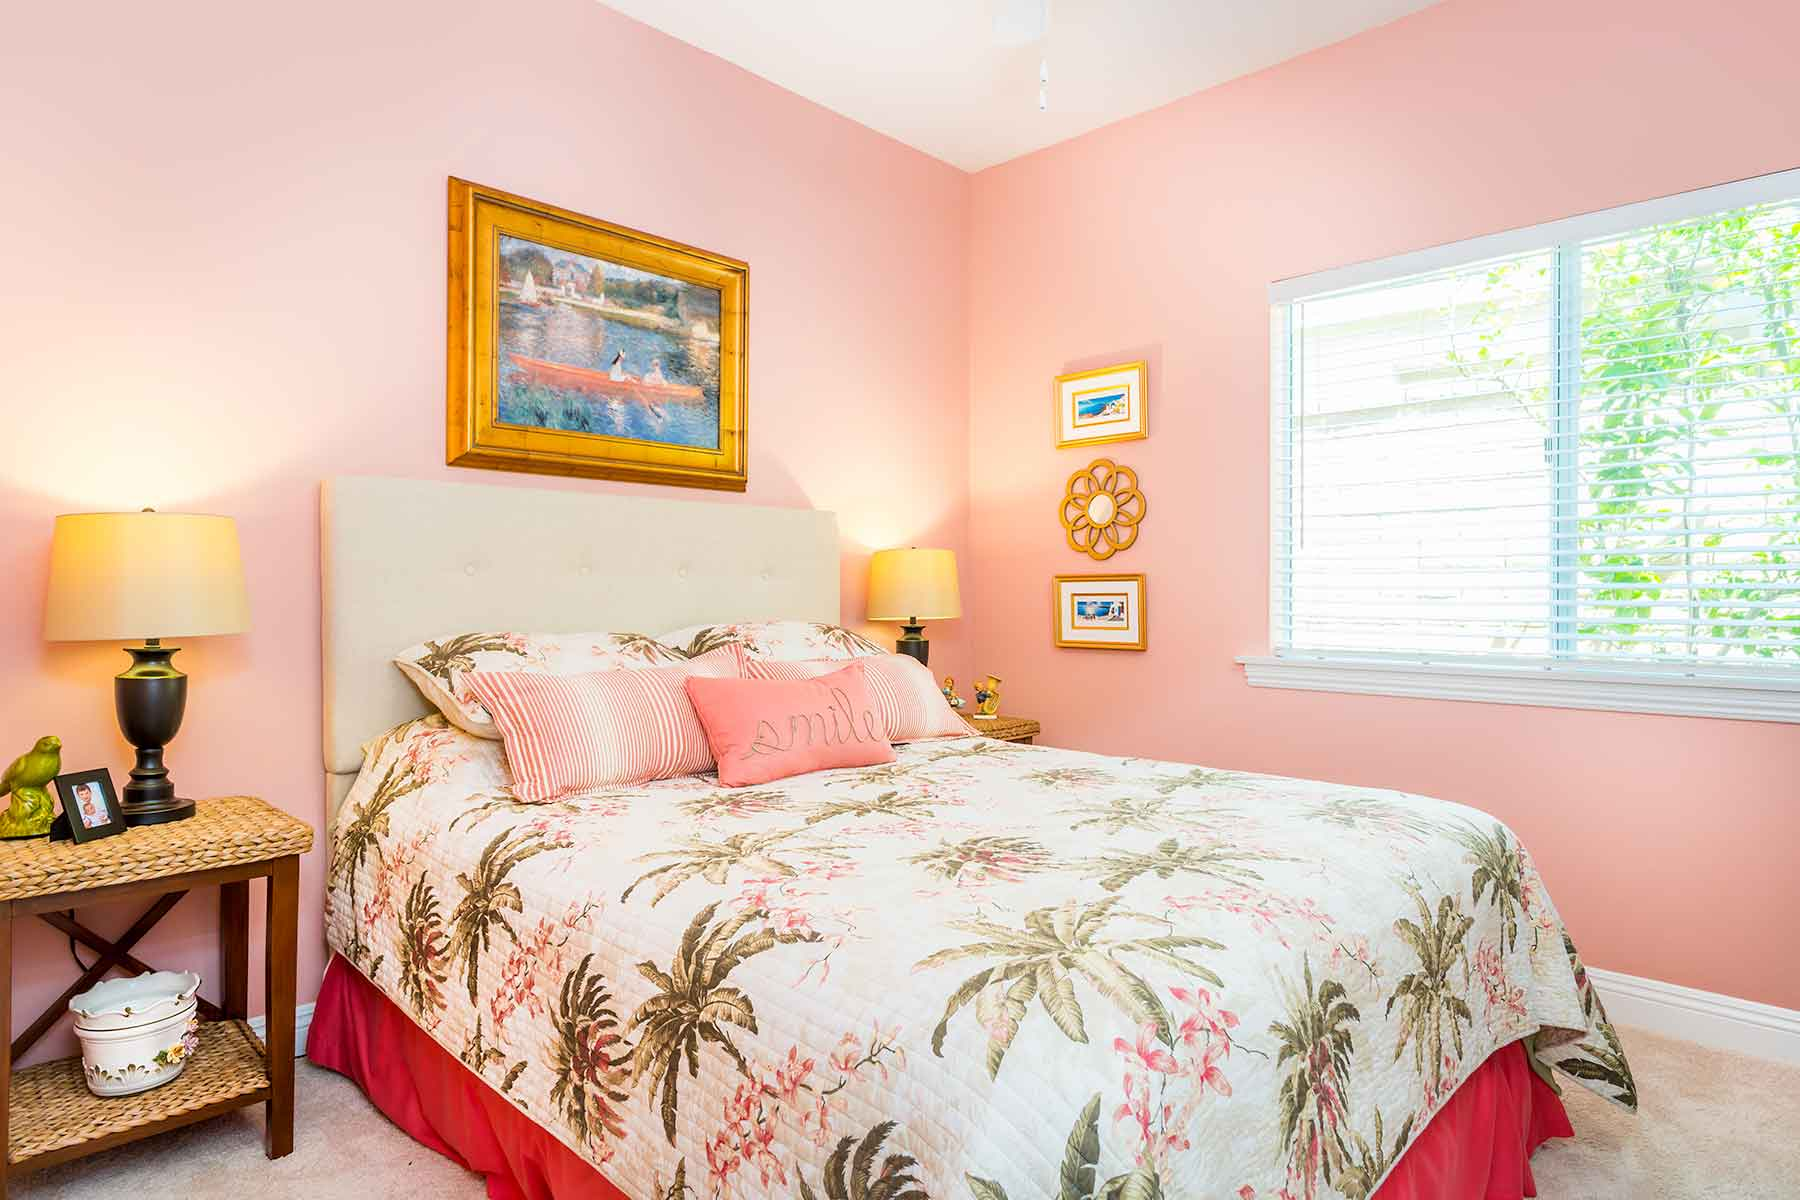 Guest room in coral and tommy bahama bedding